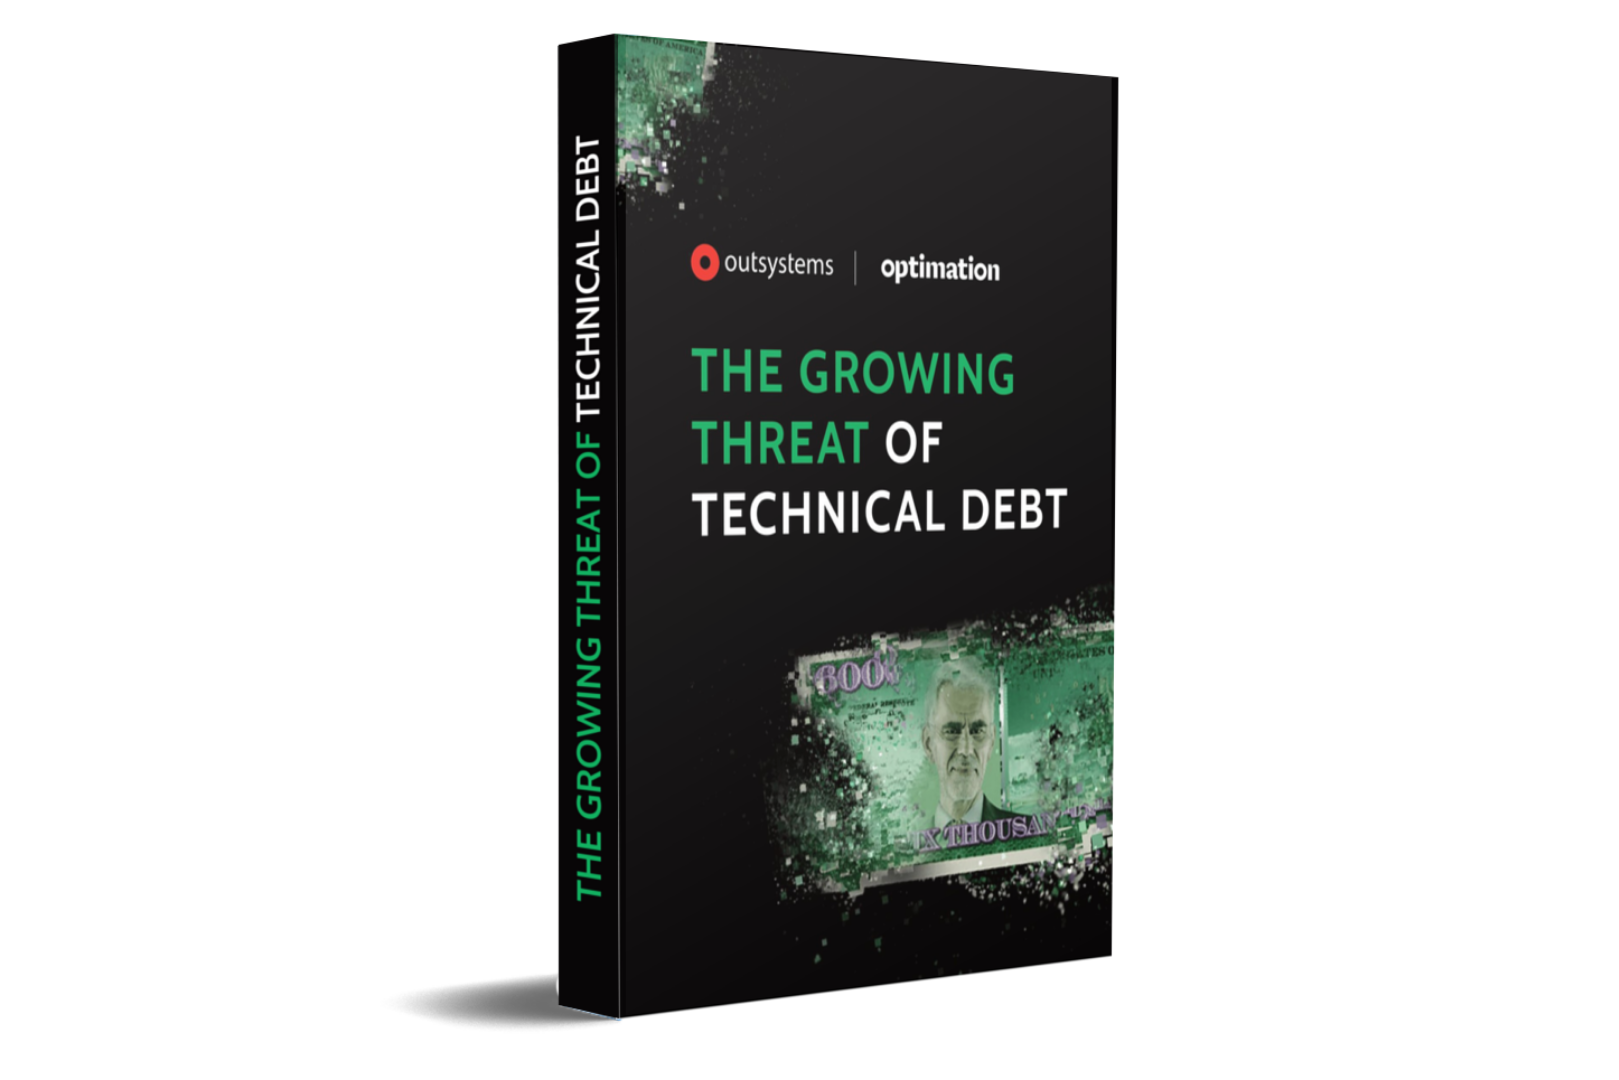 The growing threat of technical debt